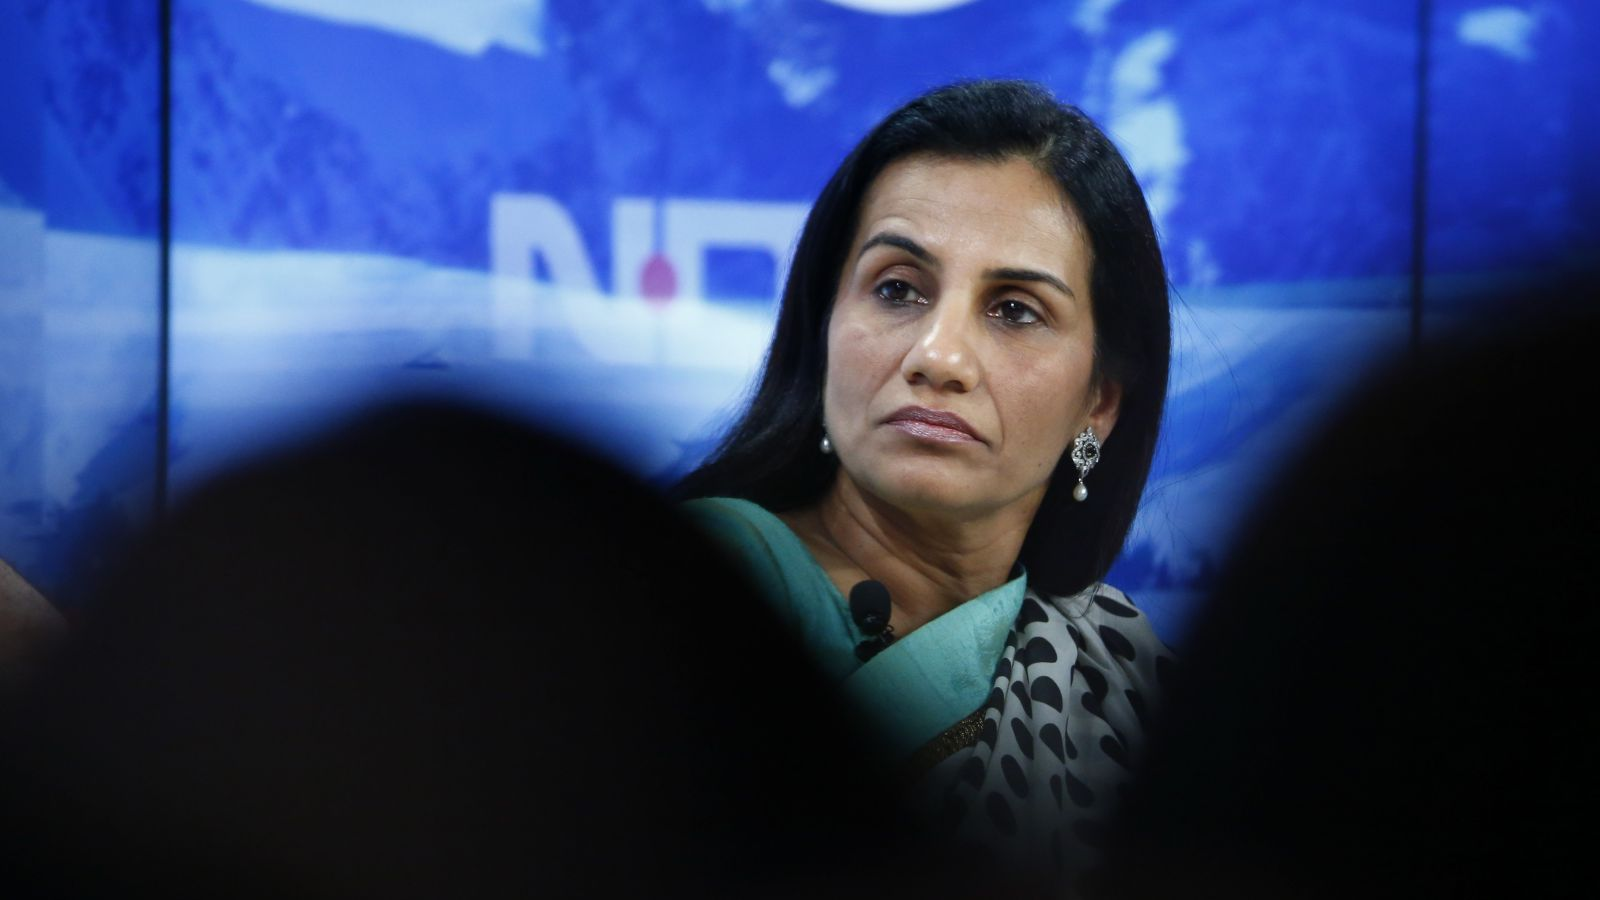 handa Kochhar, Managing Director and Chief Executive Officer of ICICI Bank listens during the session 'India's Next Decade' in the Swiss mountain resort of Davos January 23, 2015. More than 1,500 business leaders and 40 heads of state or government attend the Jan. 21-24 meeting of the World Economic Forum (WEF) to network and discuss big themes, from the price of oil to the future of the Internet. This year they are meeting in the midst of upheaval, with security forces on heightened alert after attacks in Paris, the European Central Bank considering a radical government bond-buying programme and the safe-haven Swiss franc rocketing.